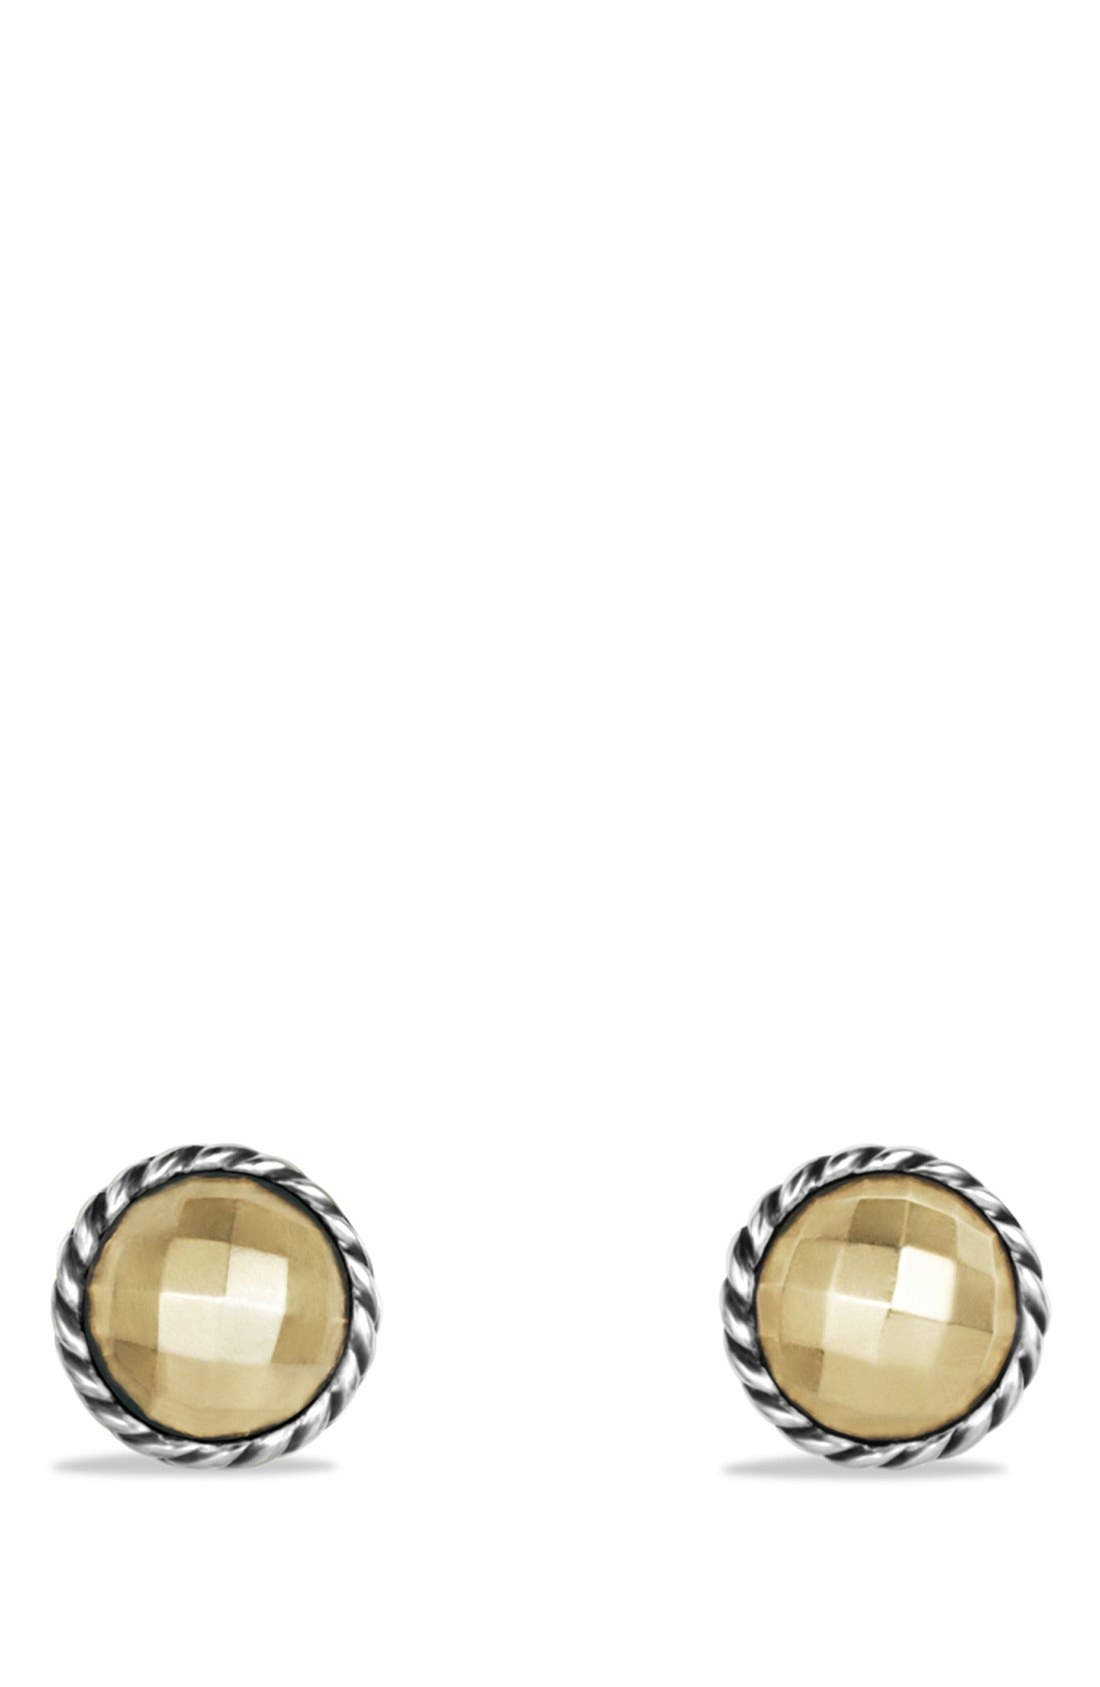 David Yurman 'Châtelaine' Earrings with Gold